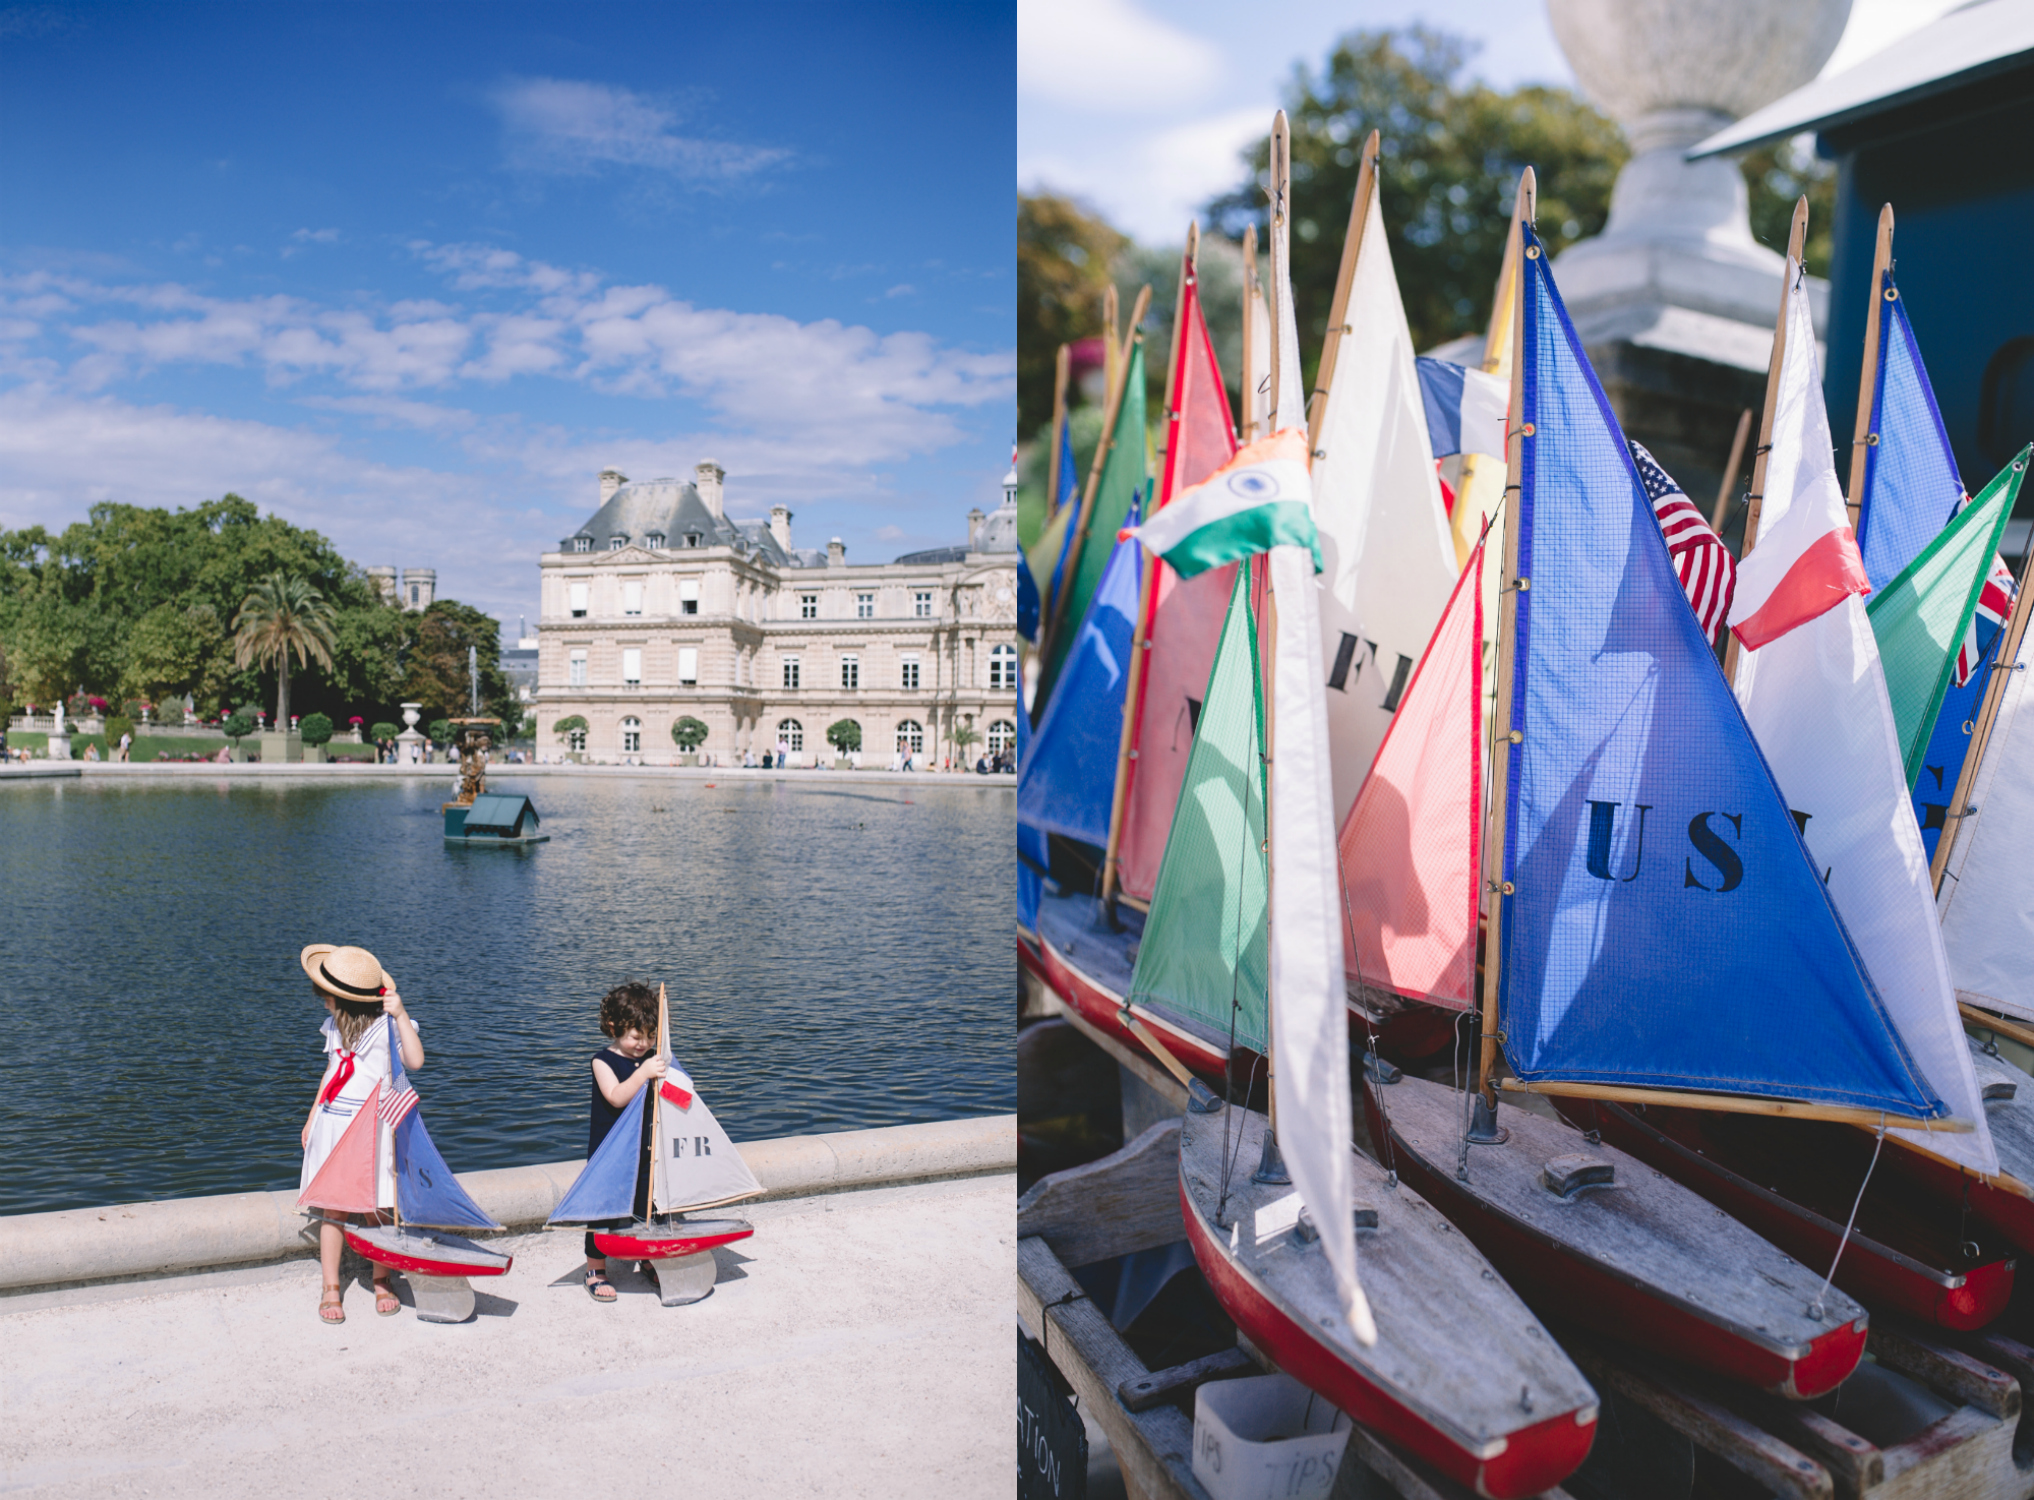 Jardin Du Luxenbourg Sailboats with Kids.jpg